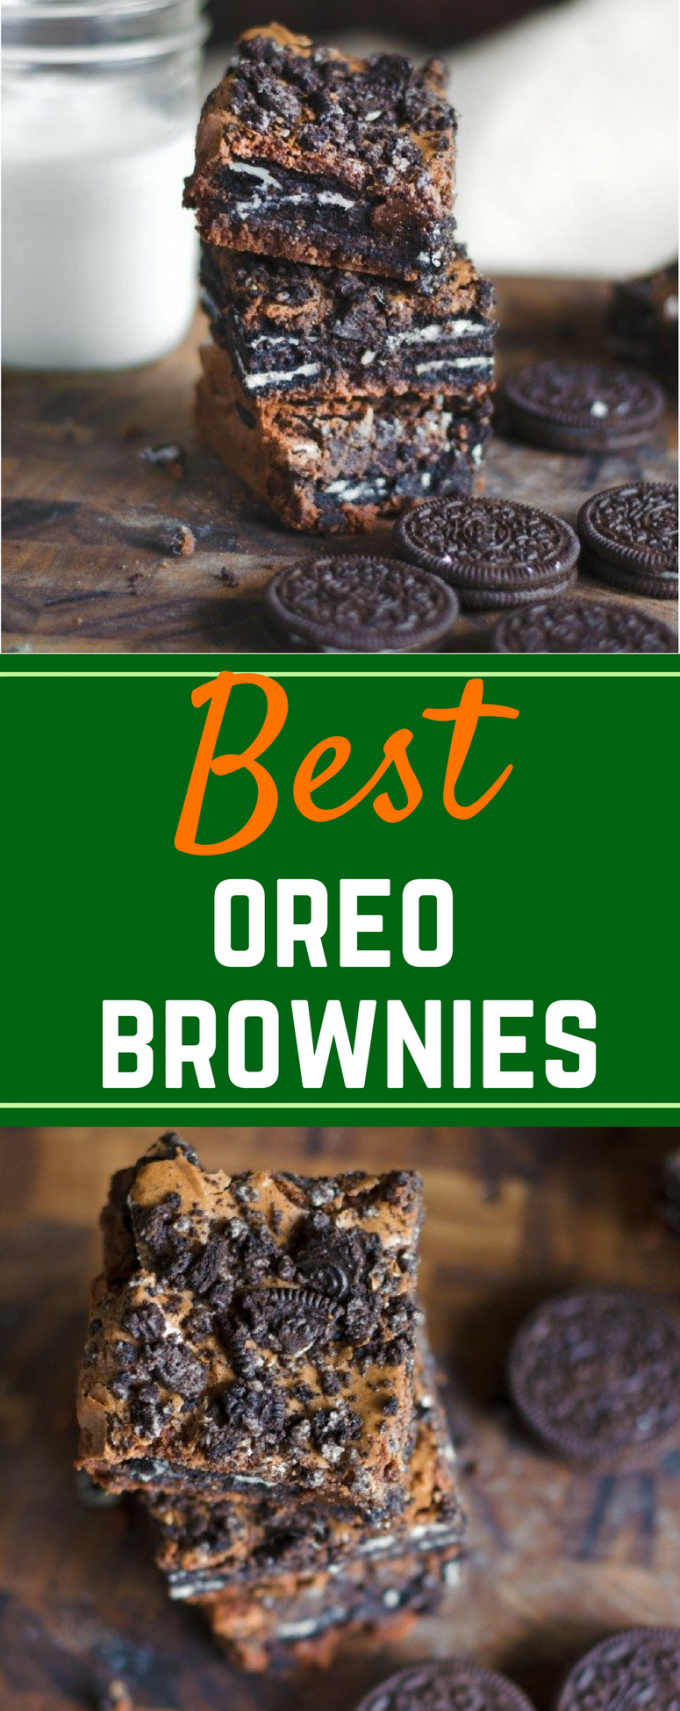 Say goodbye to cupcakes and hello to these Oreo Brownies! This from scratch, easy Oreo Brownies recipe takes your favorite cookie and turns it into a decadent dessert! You can even use a box mix to make it easier! #oreobrownies #fromscratchdesserts #easydessertrecipes #gogogogourmet via @gogogogourmet